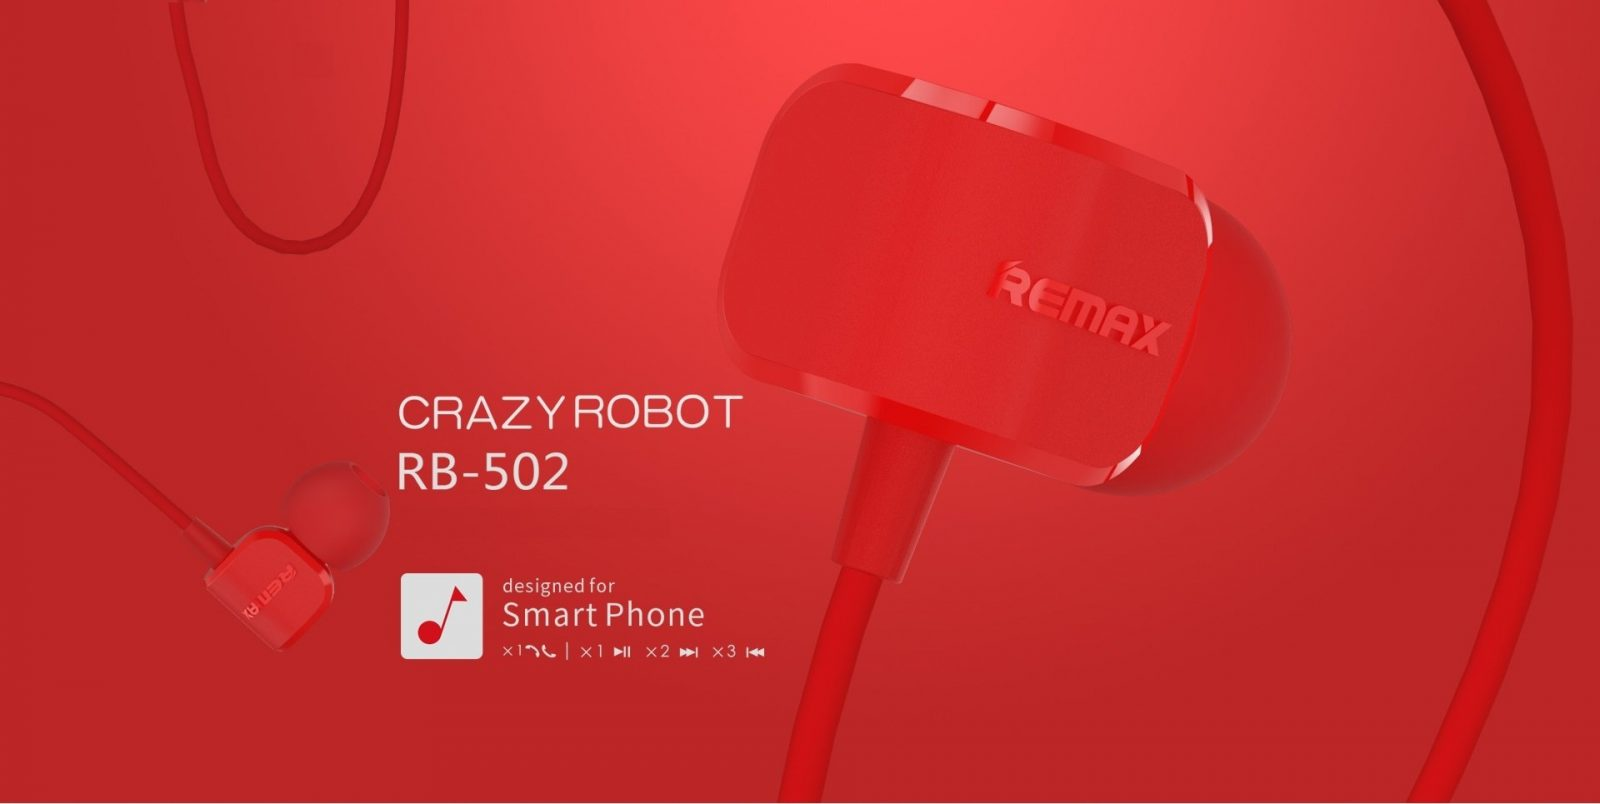 Remax Rm 502 Crazy Robot In Ear Earphone (1)